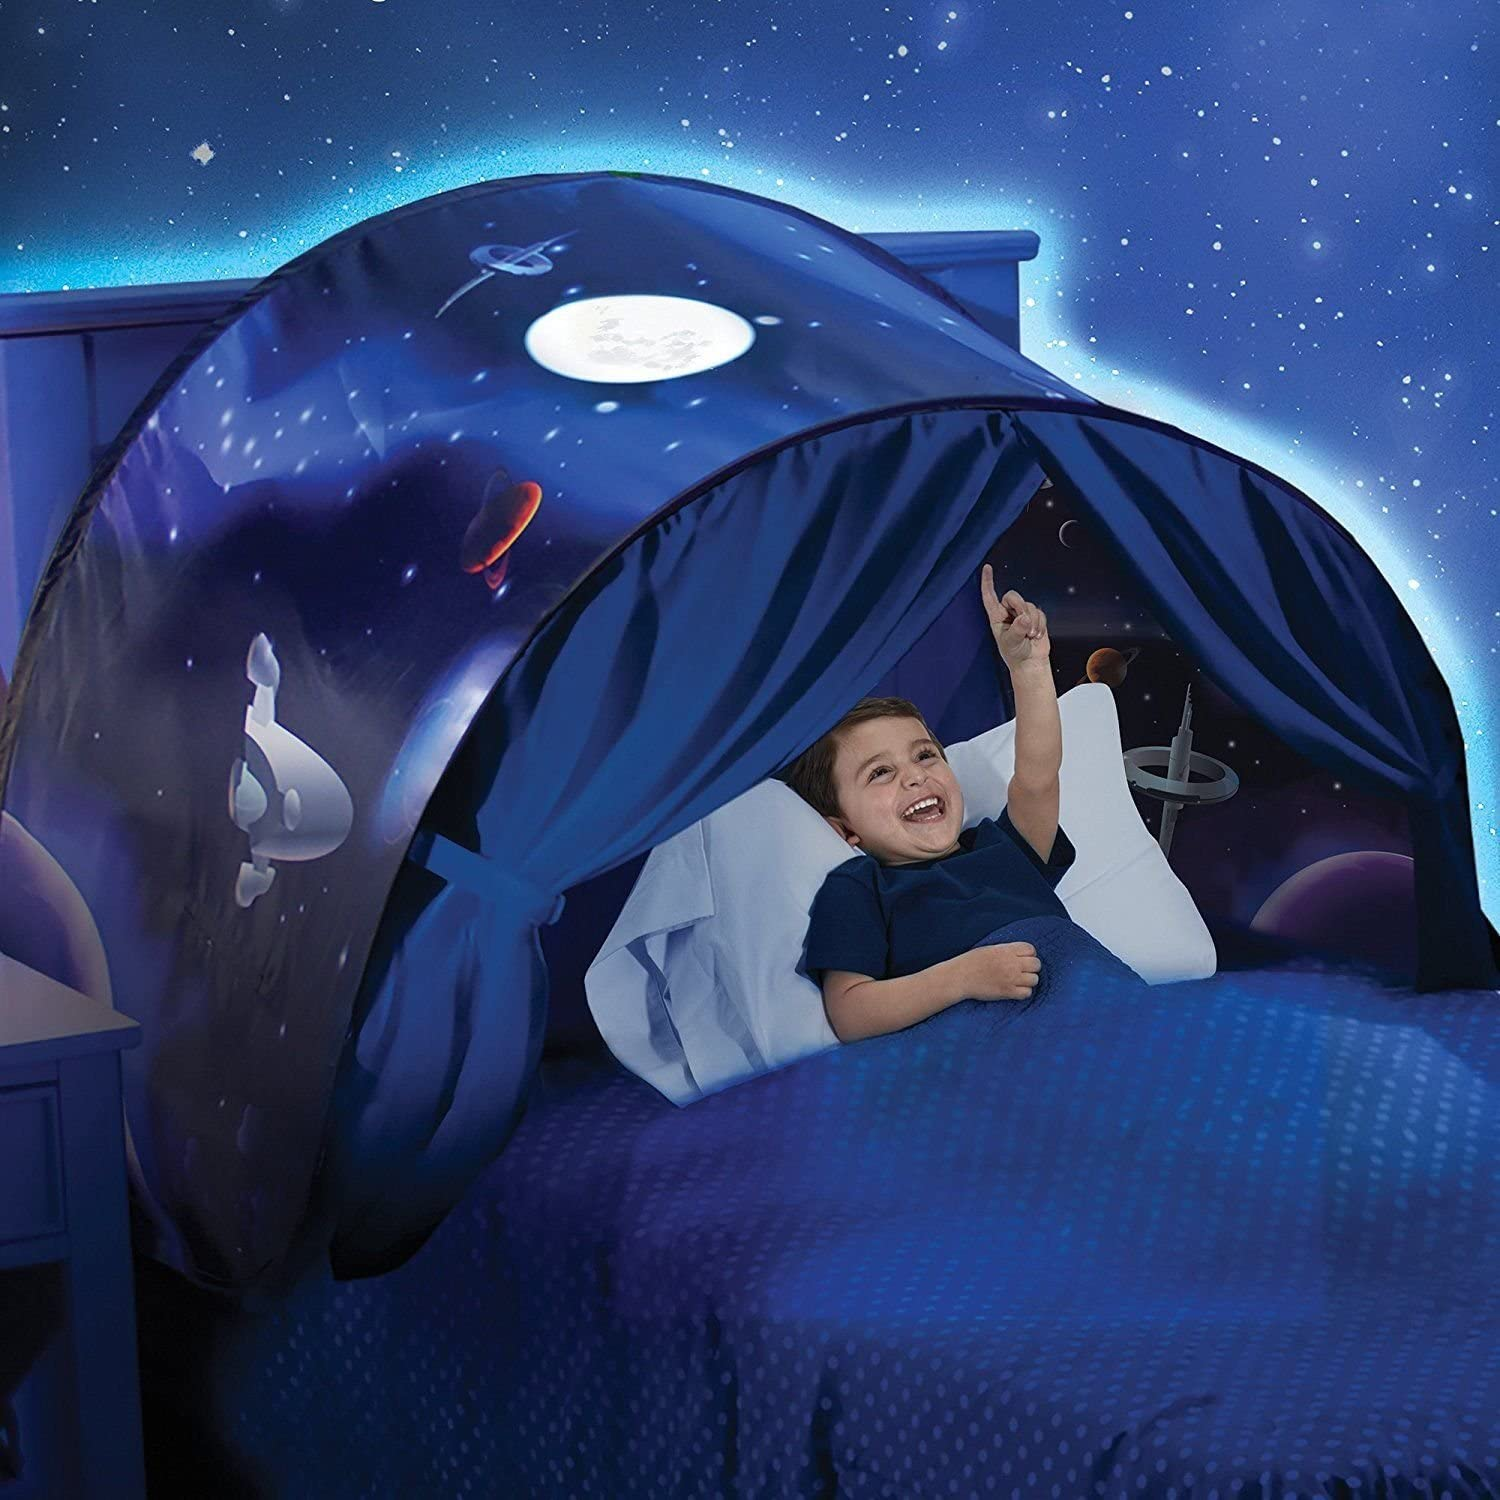 Plages Dream Tents, New Popular Dream Tents Magical Winter Wonderland Folding Children Tent Sky Tent Fantasy Tent Indoor Bed Nets for Kids (B): Amazon.co.uk: Kitchen & Home